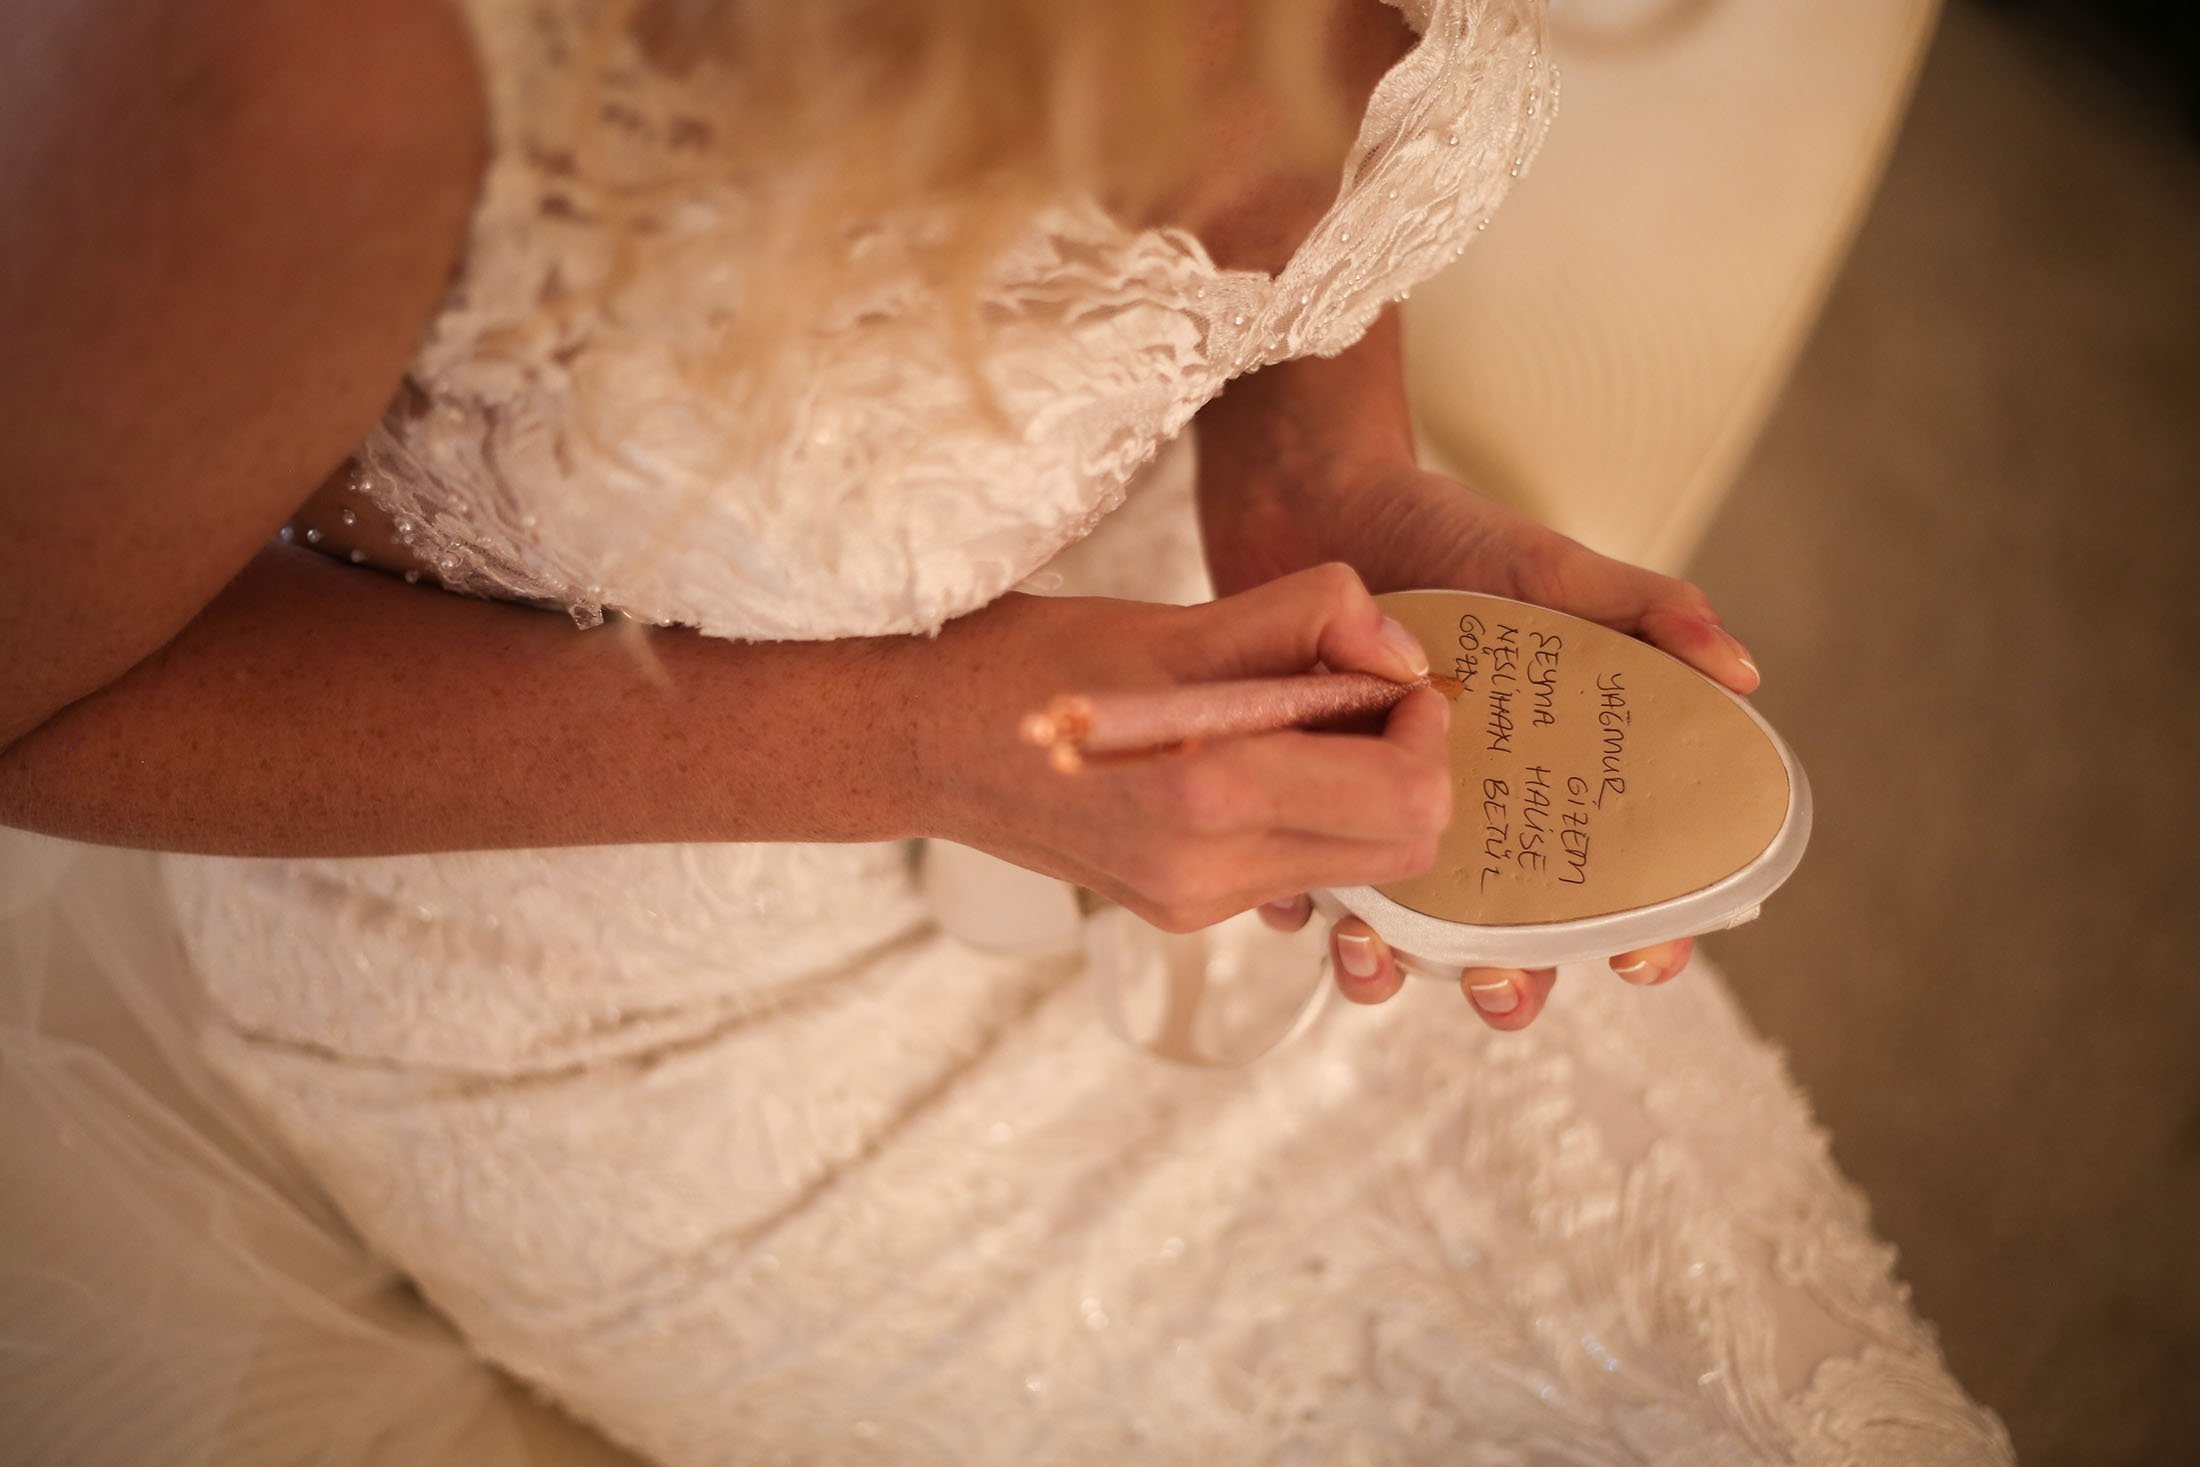 It is customary for the bride to write her friends' names under her shoe before the wedding. (Shutterstock Photo)